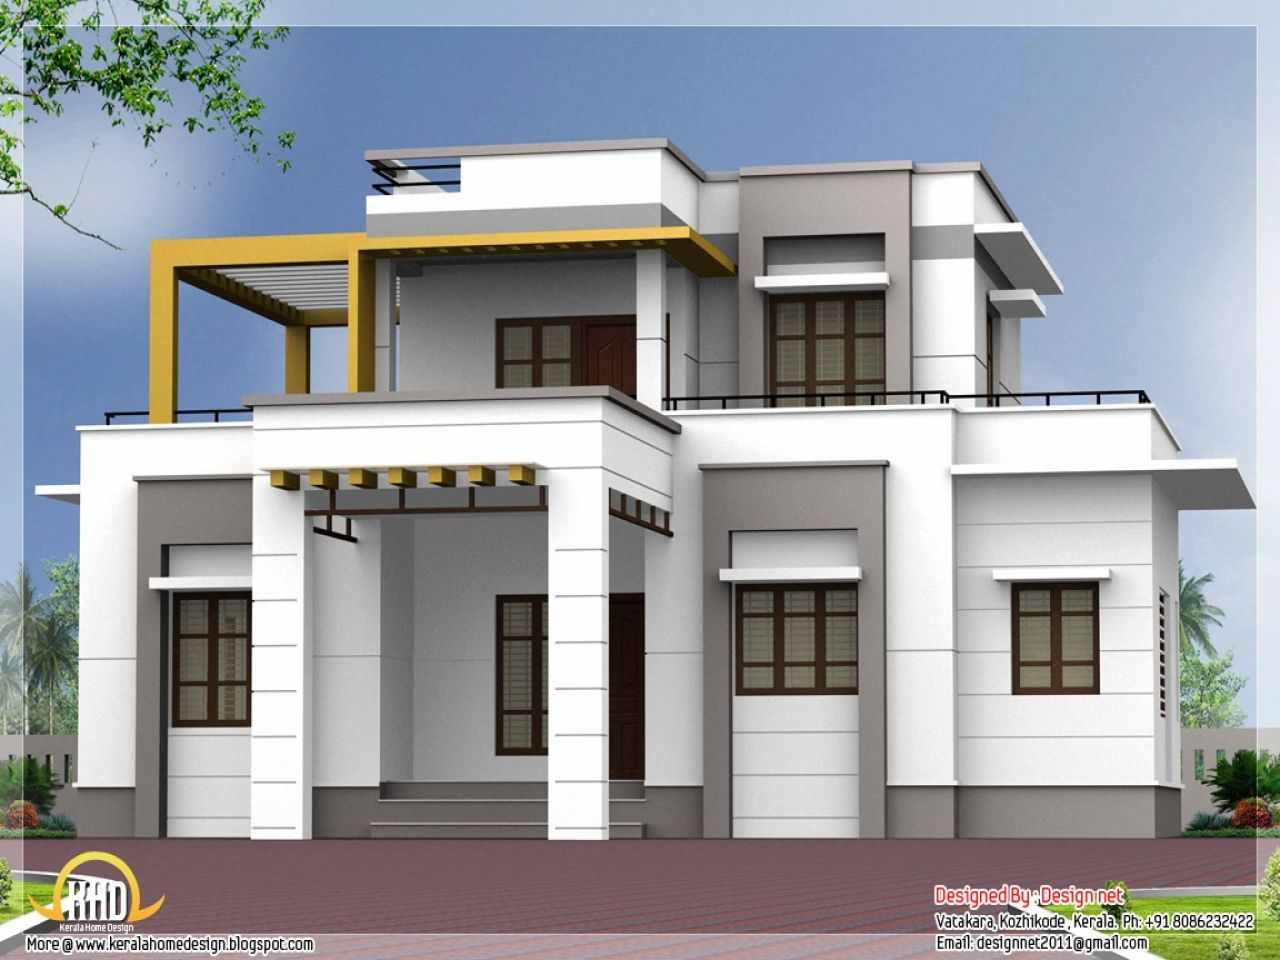 Flat Roof House Design Ideas Roofrepair Small House Exteriors Small House Design Exterior House Outside Design